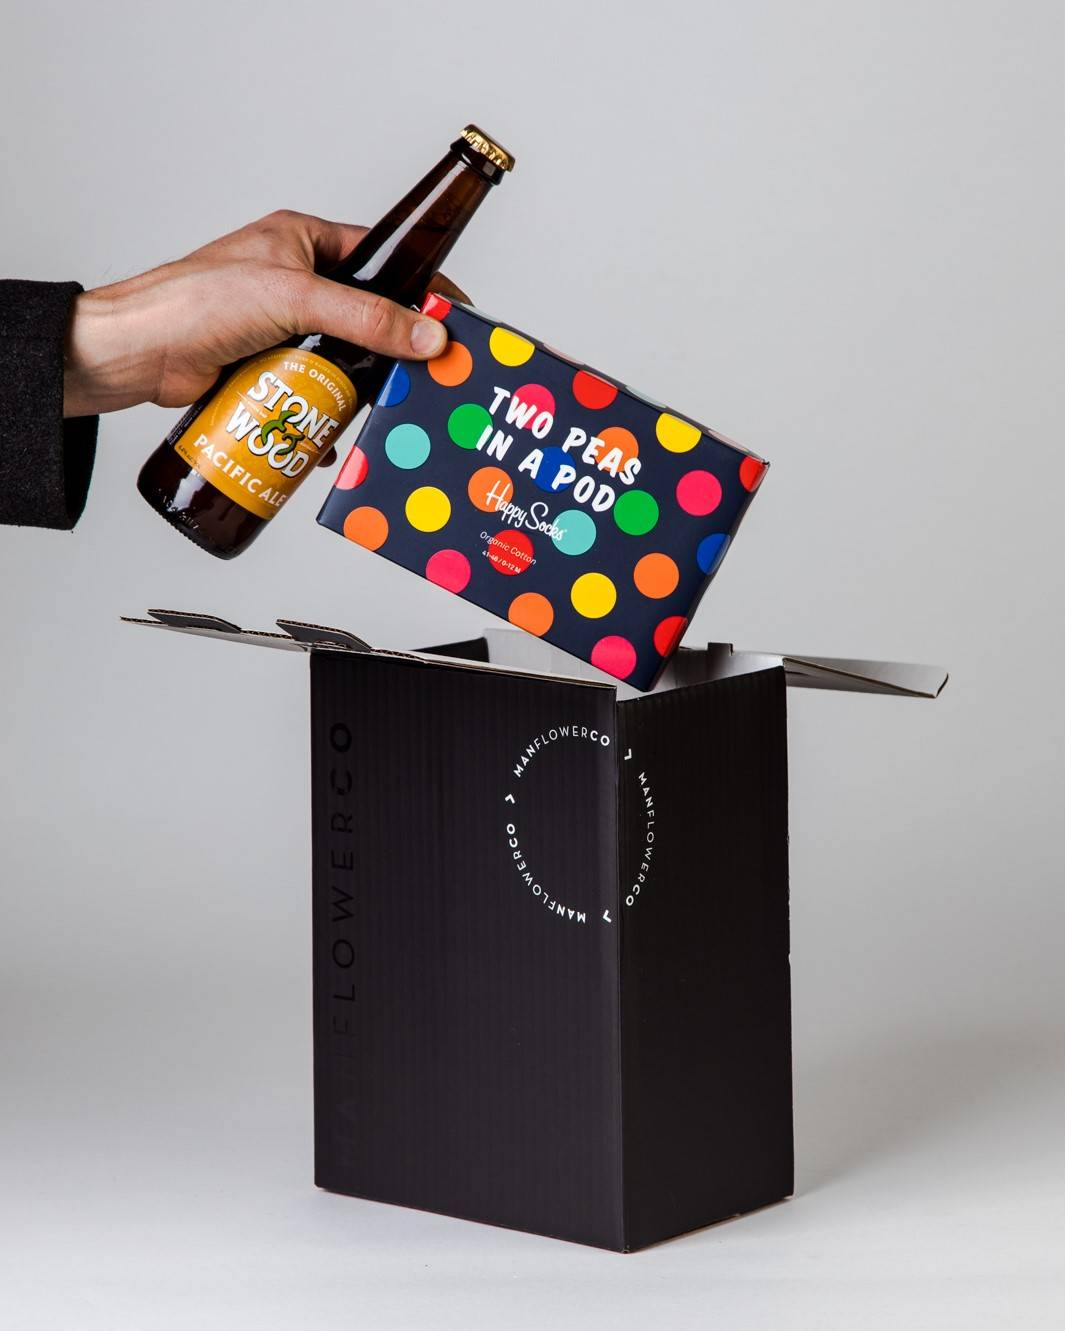 Sock Gift + Beer, part of Manflower Co's range of Father's Day Gifts.